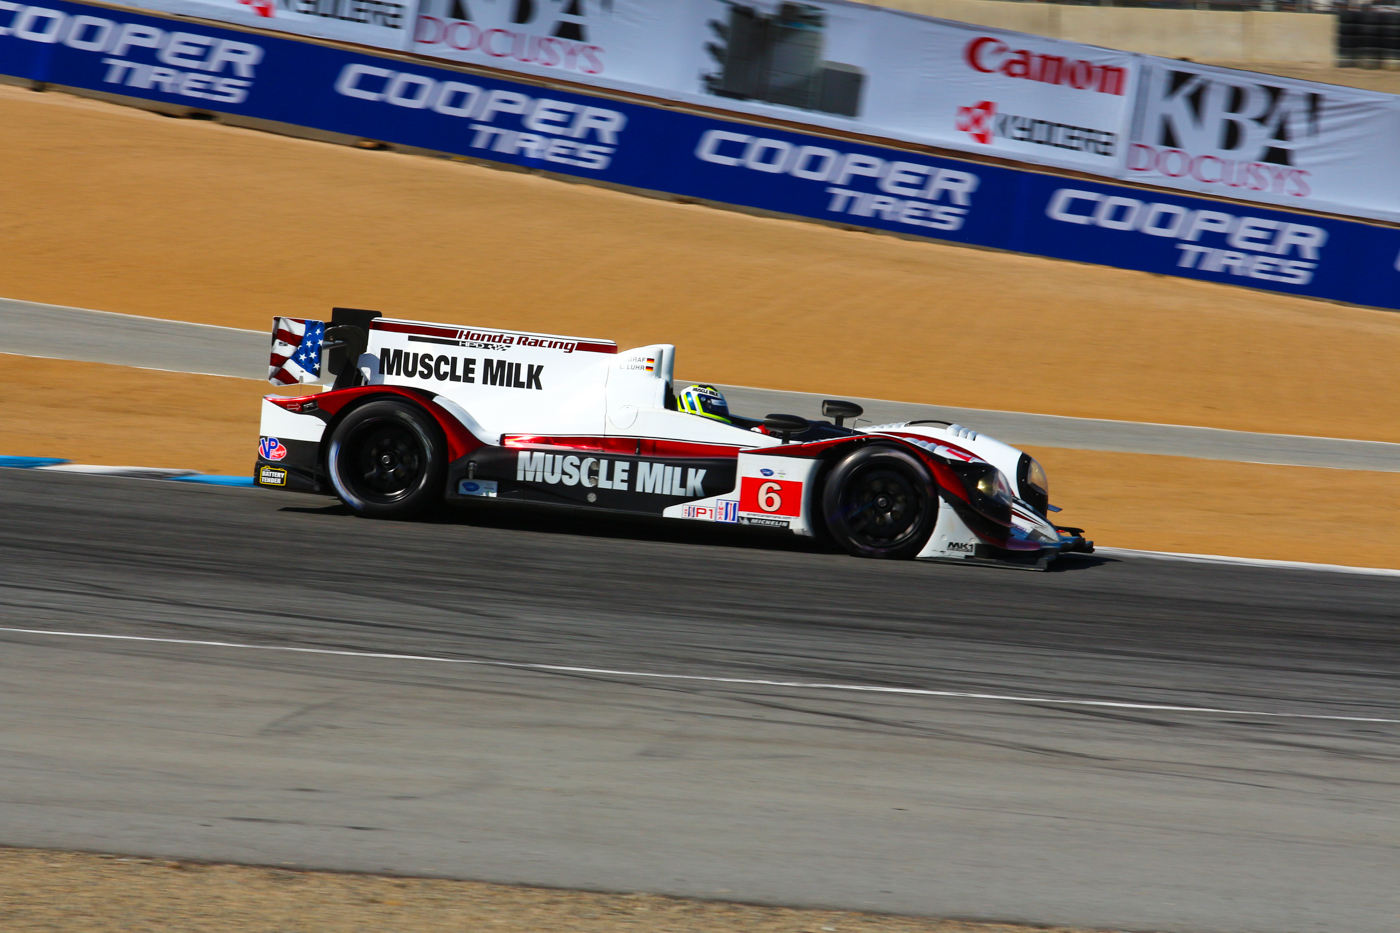 © Mark Farouk Muscle Milk leading into Andretti hairpin at Laguna Seca, 2013